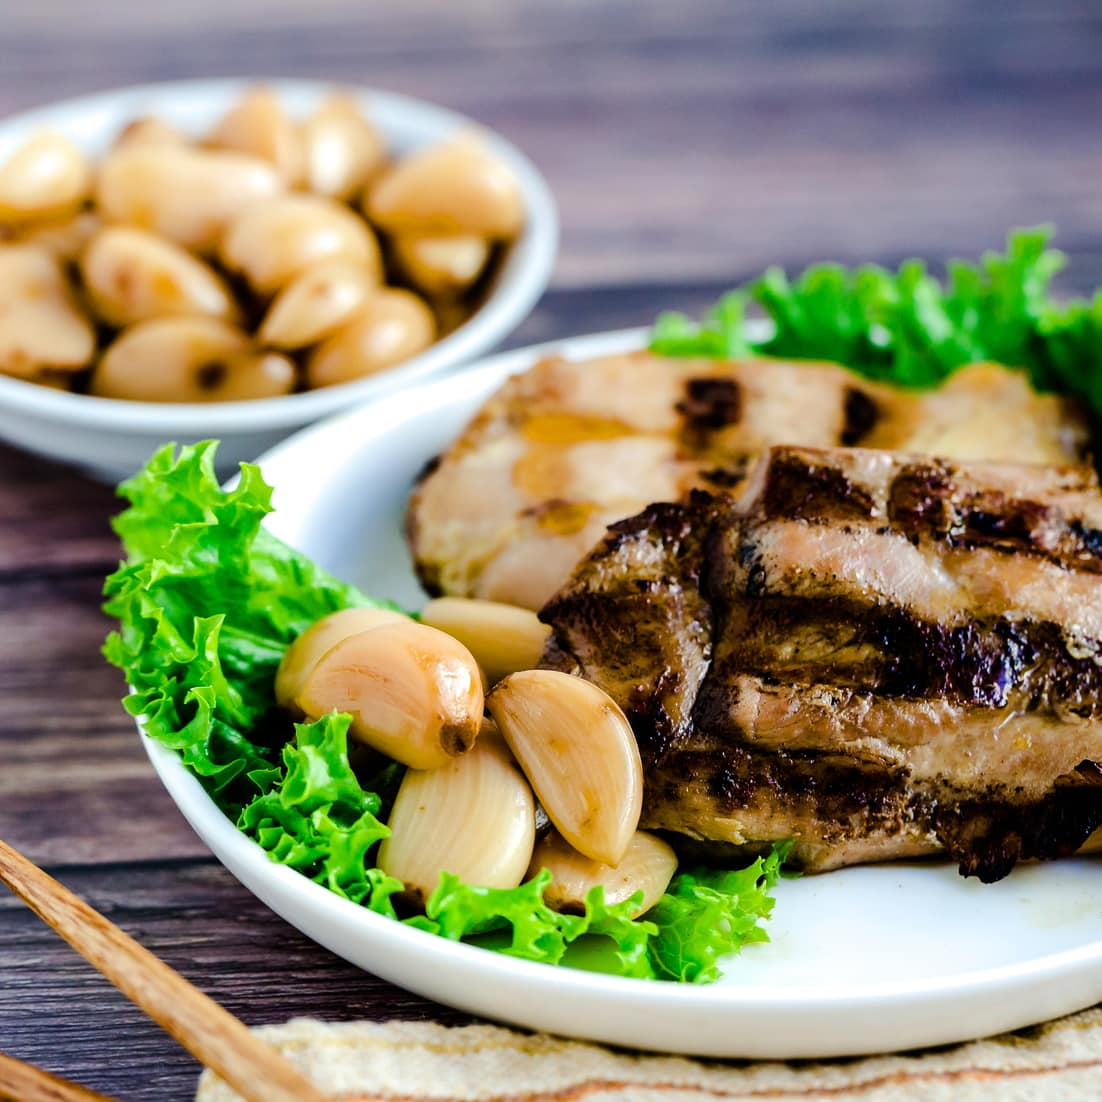 Japanese Soy Sauce Pickled Garlic served with perfect BBQ chicken on green leaf lettuce